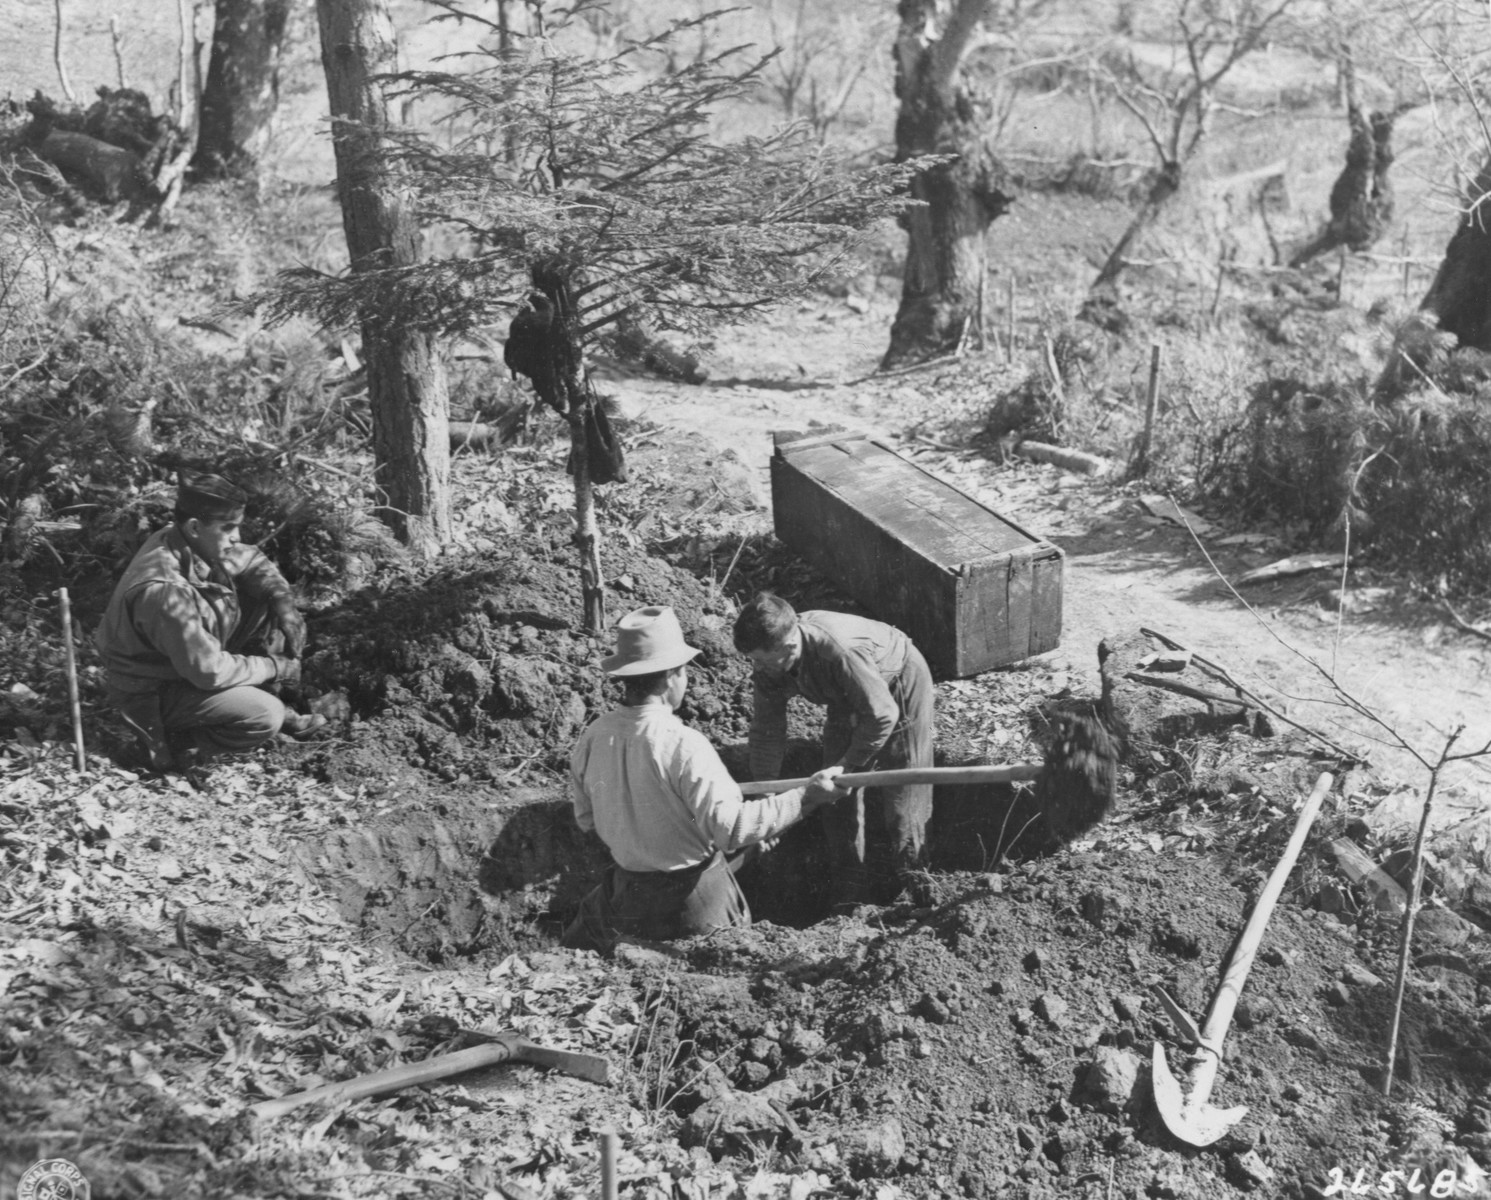 Capt. Labre Garcia, investigating officer of the U.S. Military Government, looks on as Italian workmen dig a grave for one of 82 Italian civilians killed and burned by German forces.